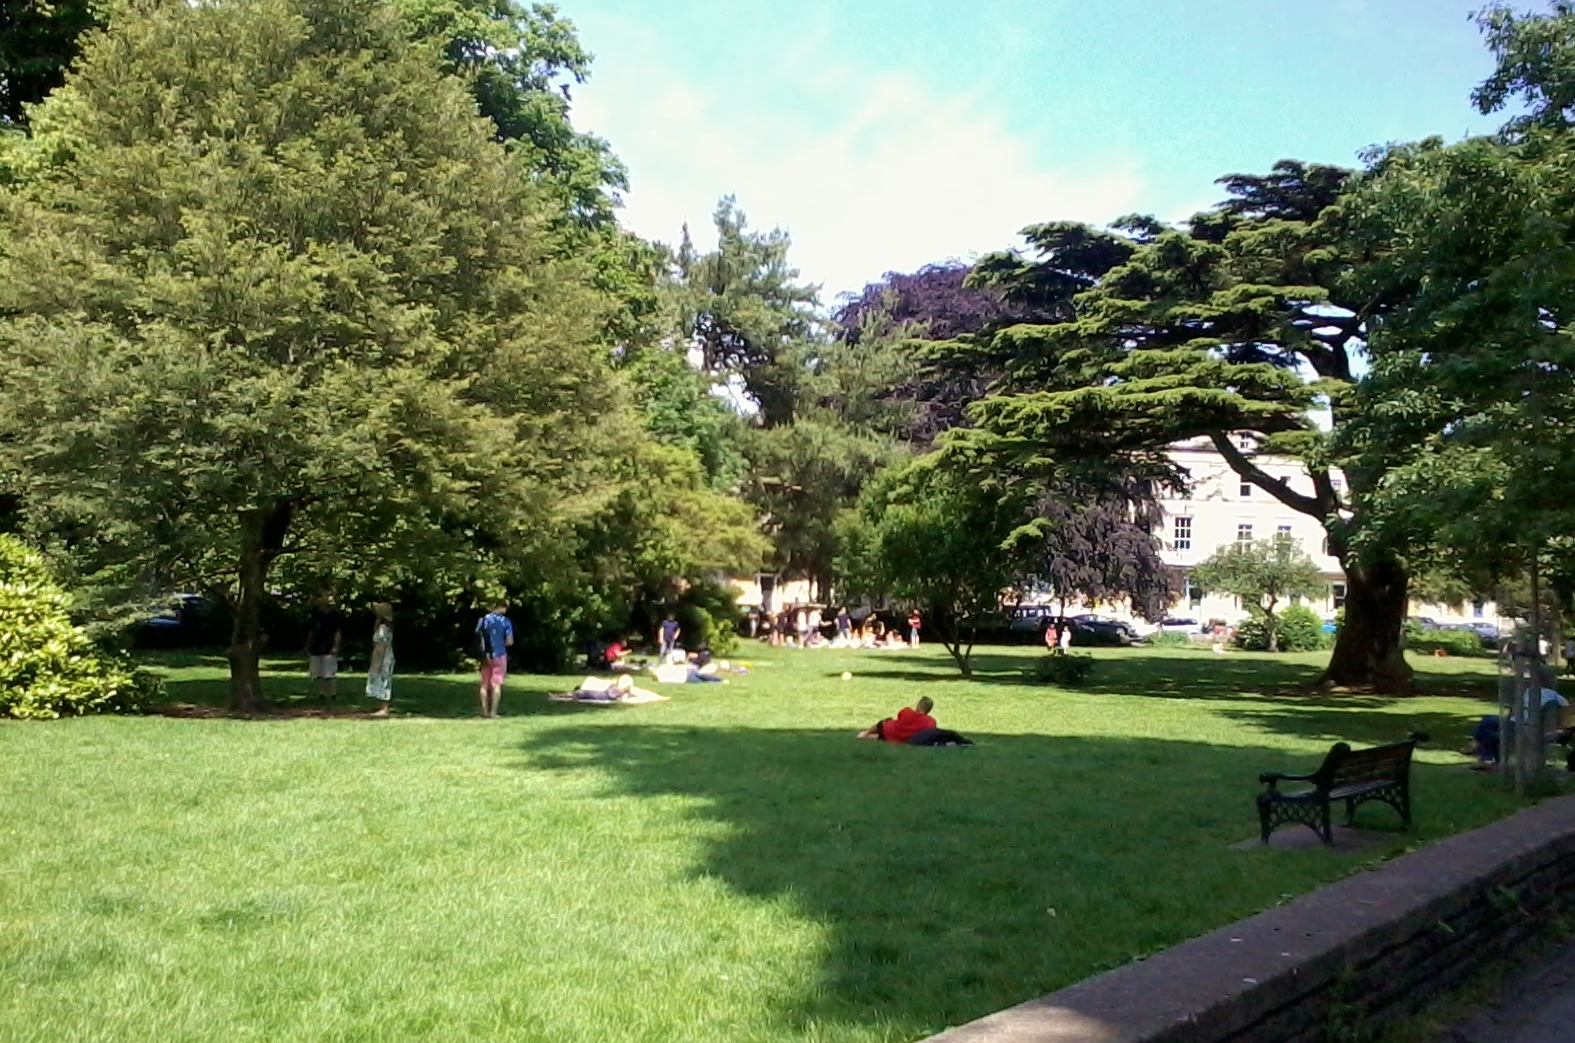 Sunbathing & Picnics in Victoria Square